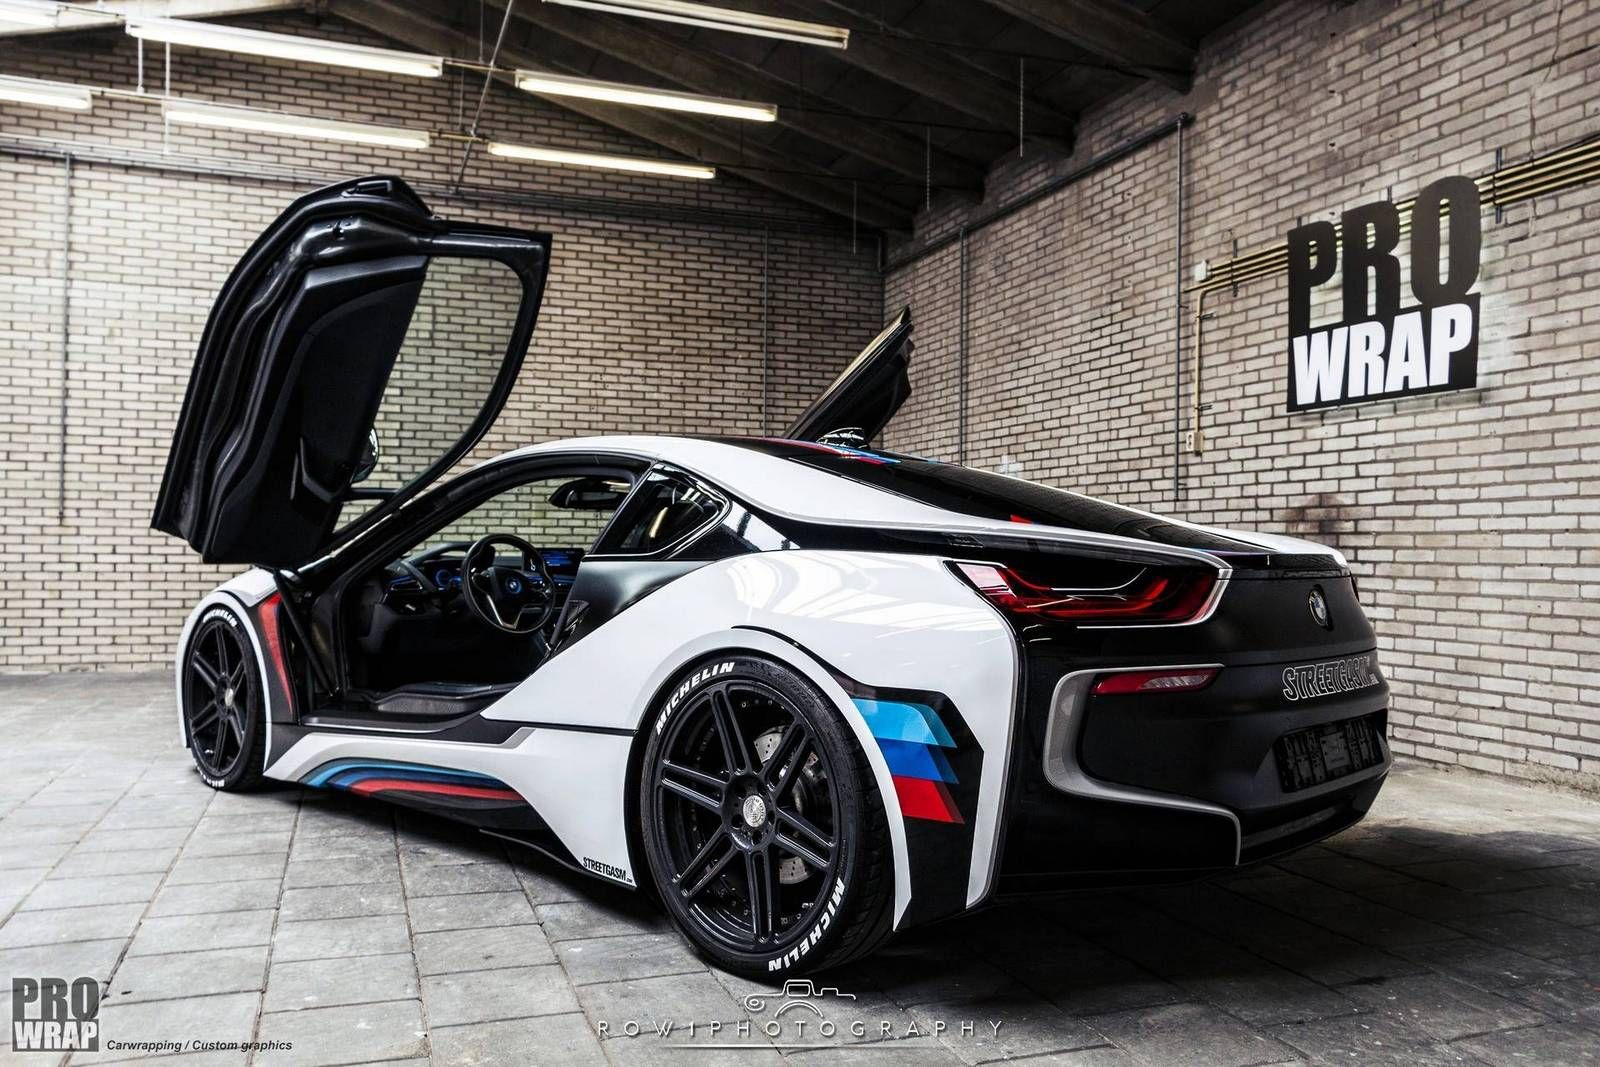 Custom Wrapped Bmw I8 By Prowrap In The Netherlands Gtspirit Bmw